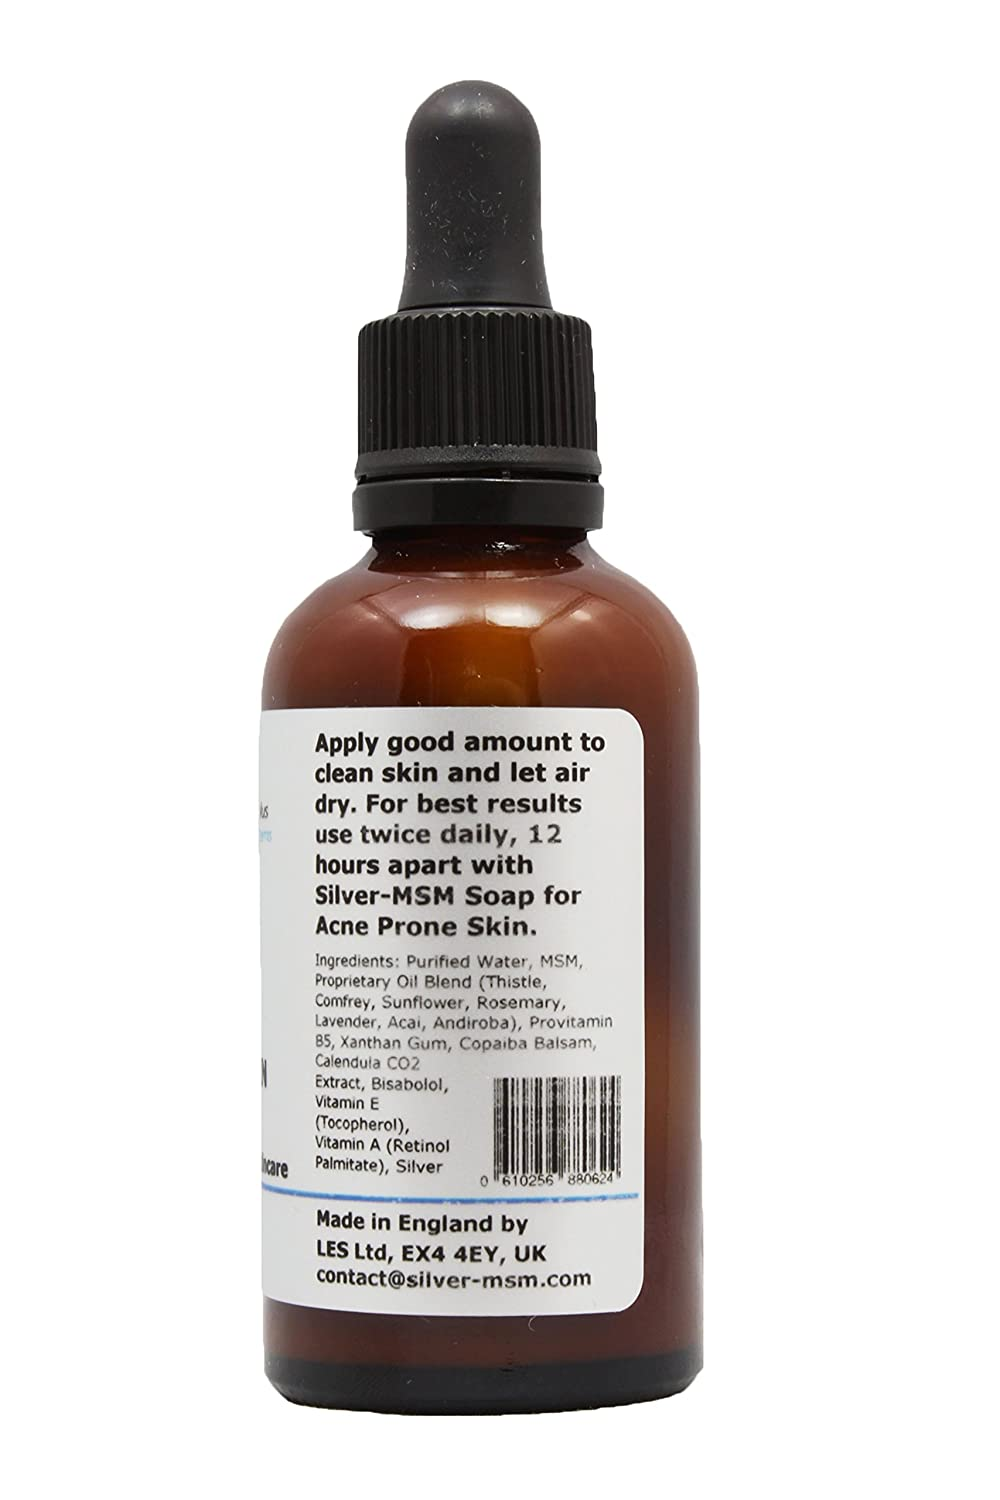 Balsam for gums Asepta: reviews, price, instructions for use 69